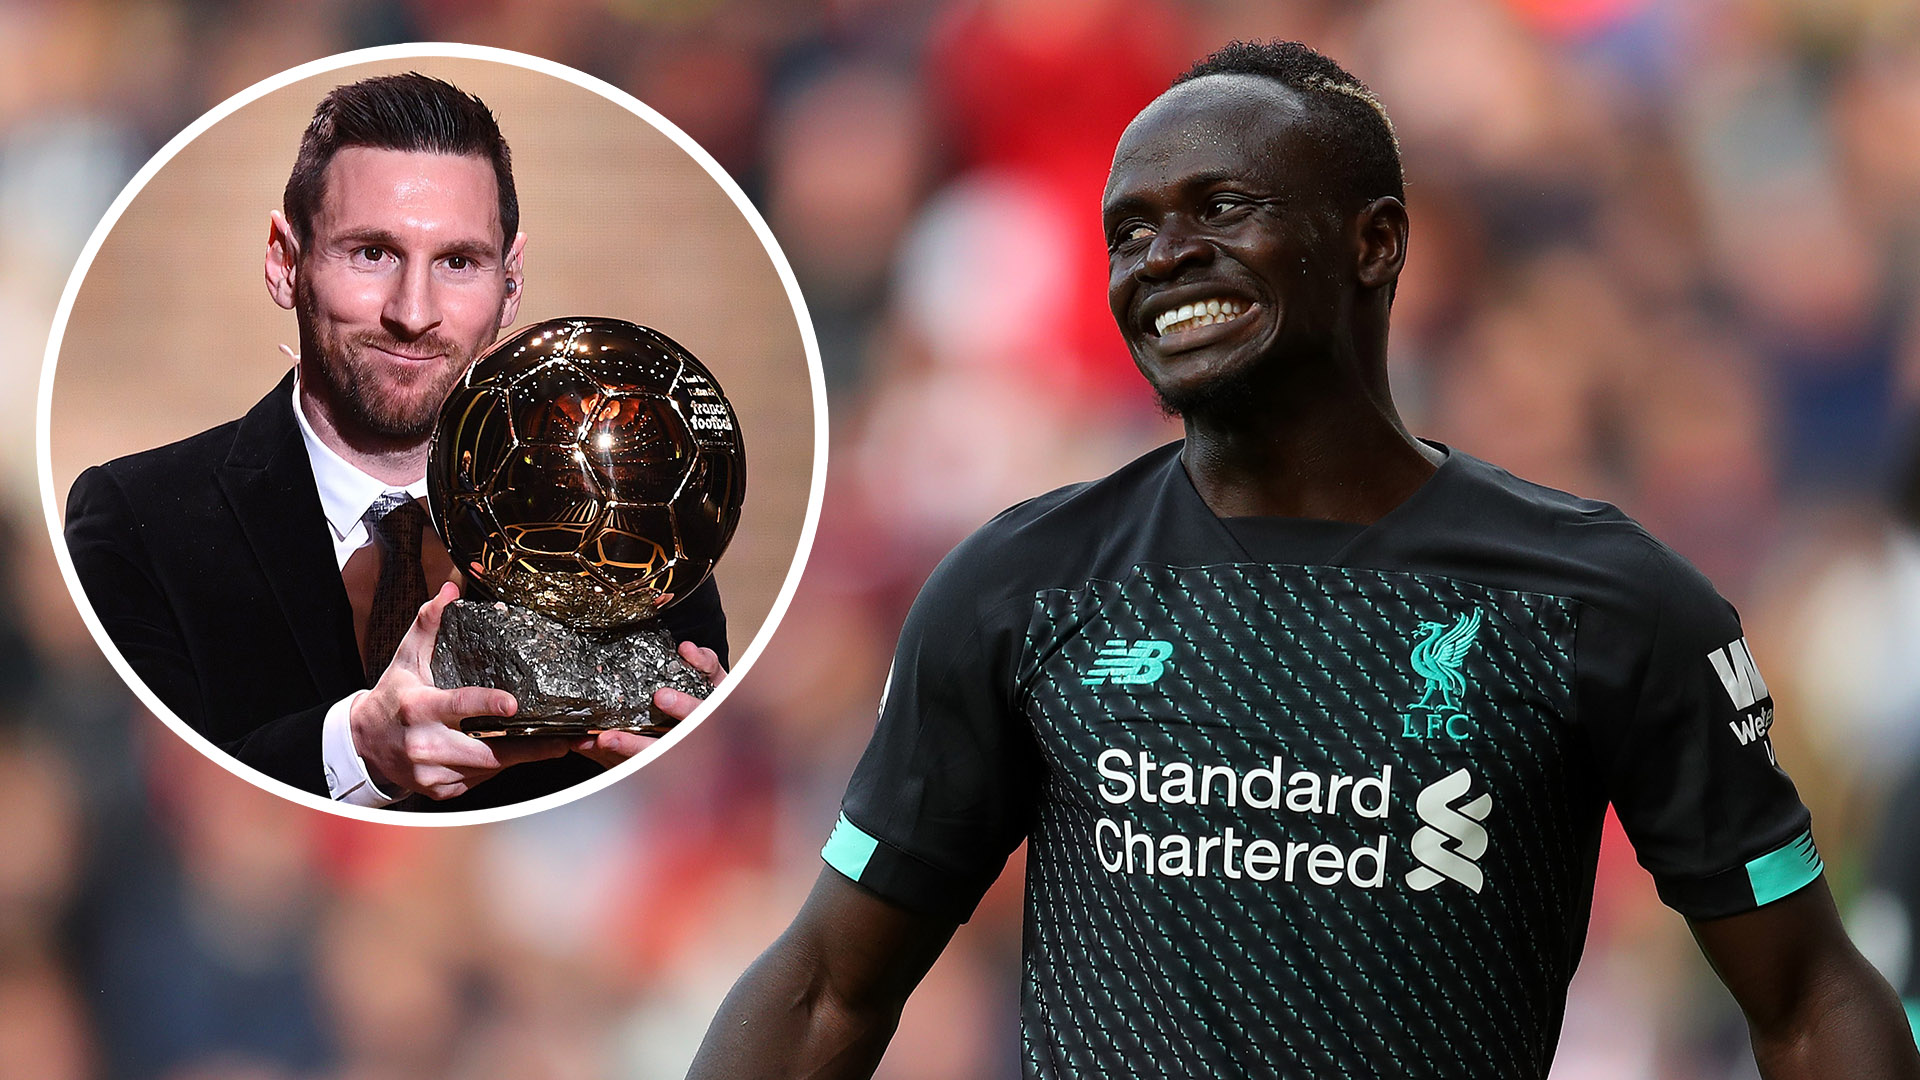 Messi voted for Mane to win The Best award & says it's a 'shame' he was fourth in Ballon d'Or voting